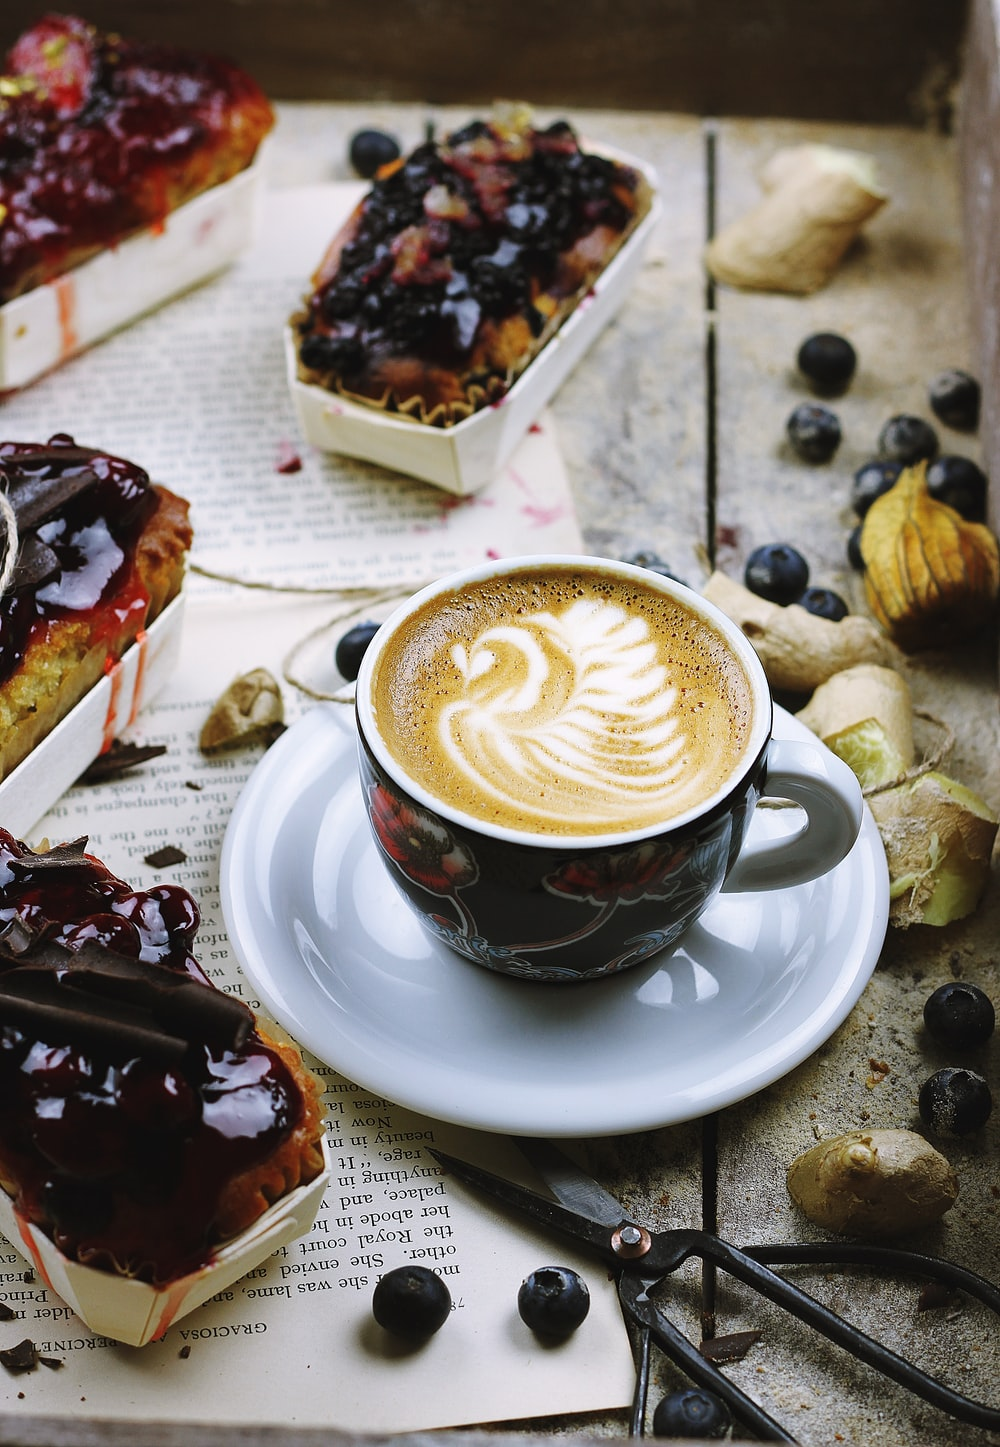 photo of brown and white teacup filled with coffee on saucer